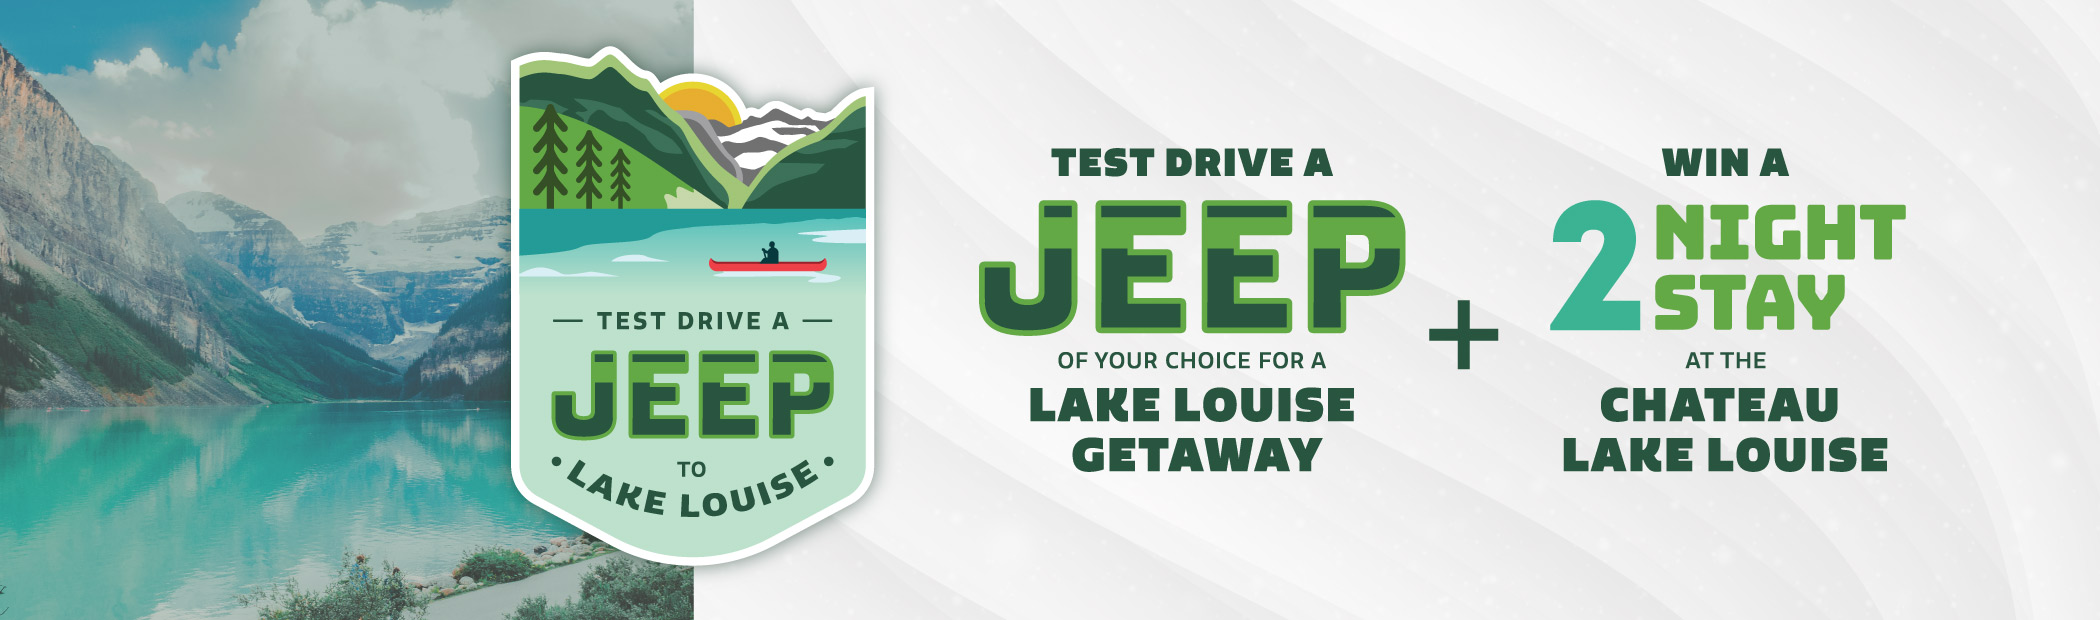 Test Drive a Jeep to Lake Louise